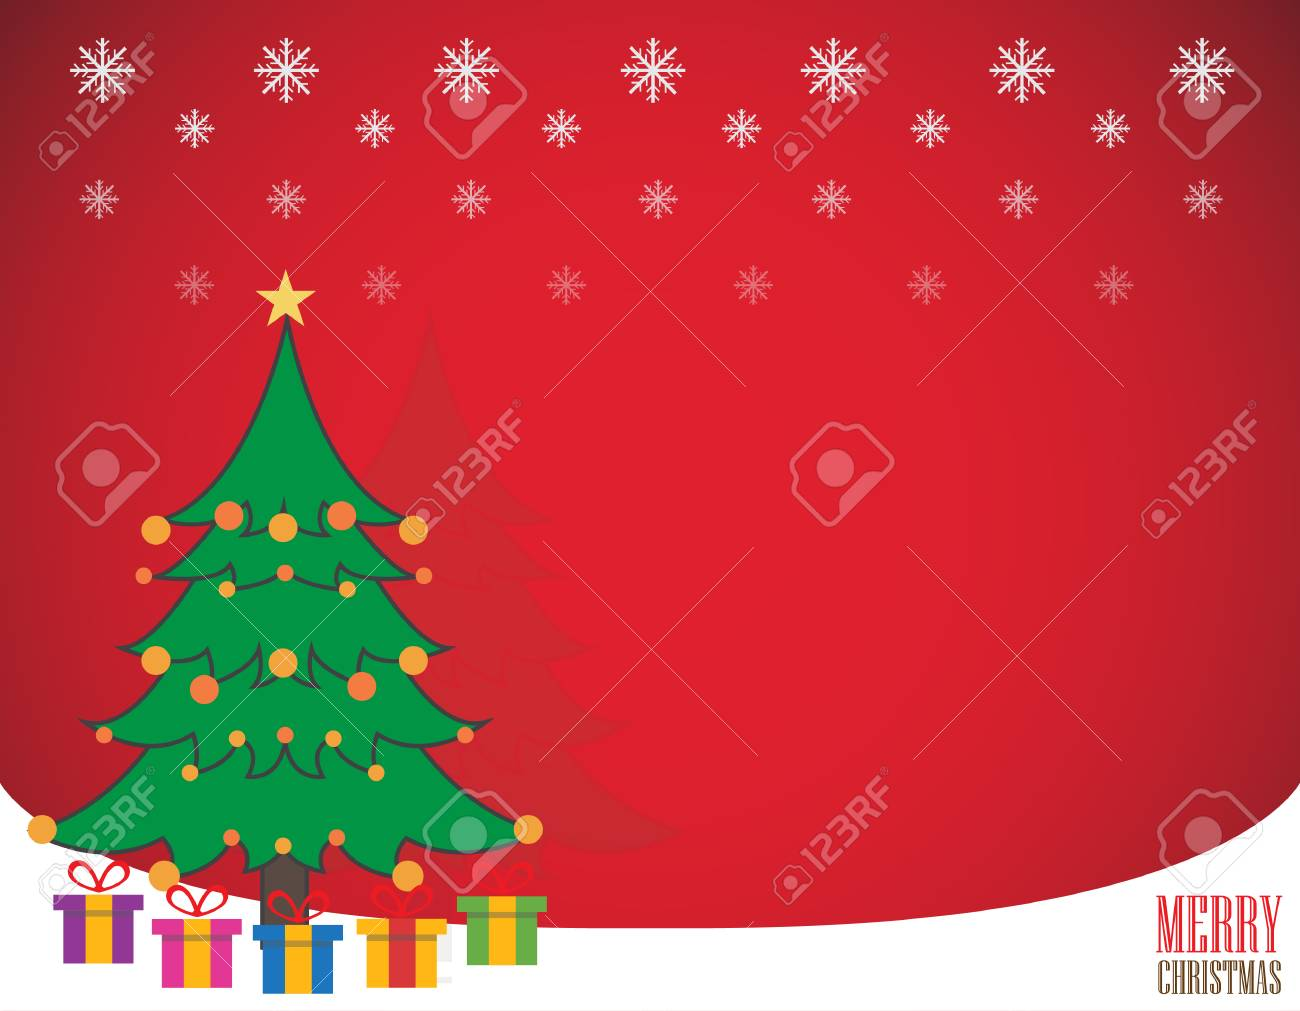 Merry Christmas Greeting Card Template Background Royalty Free